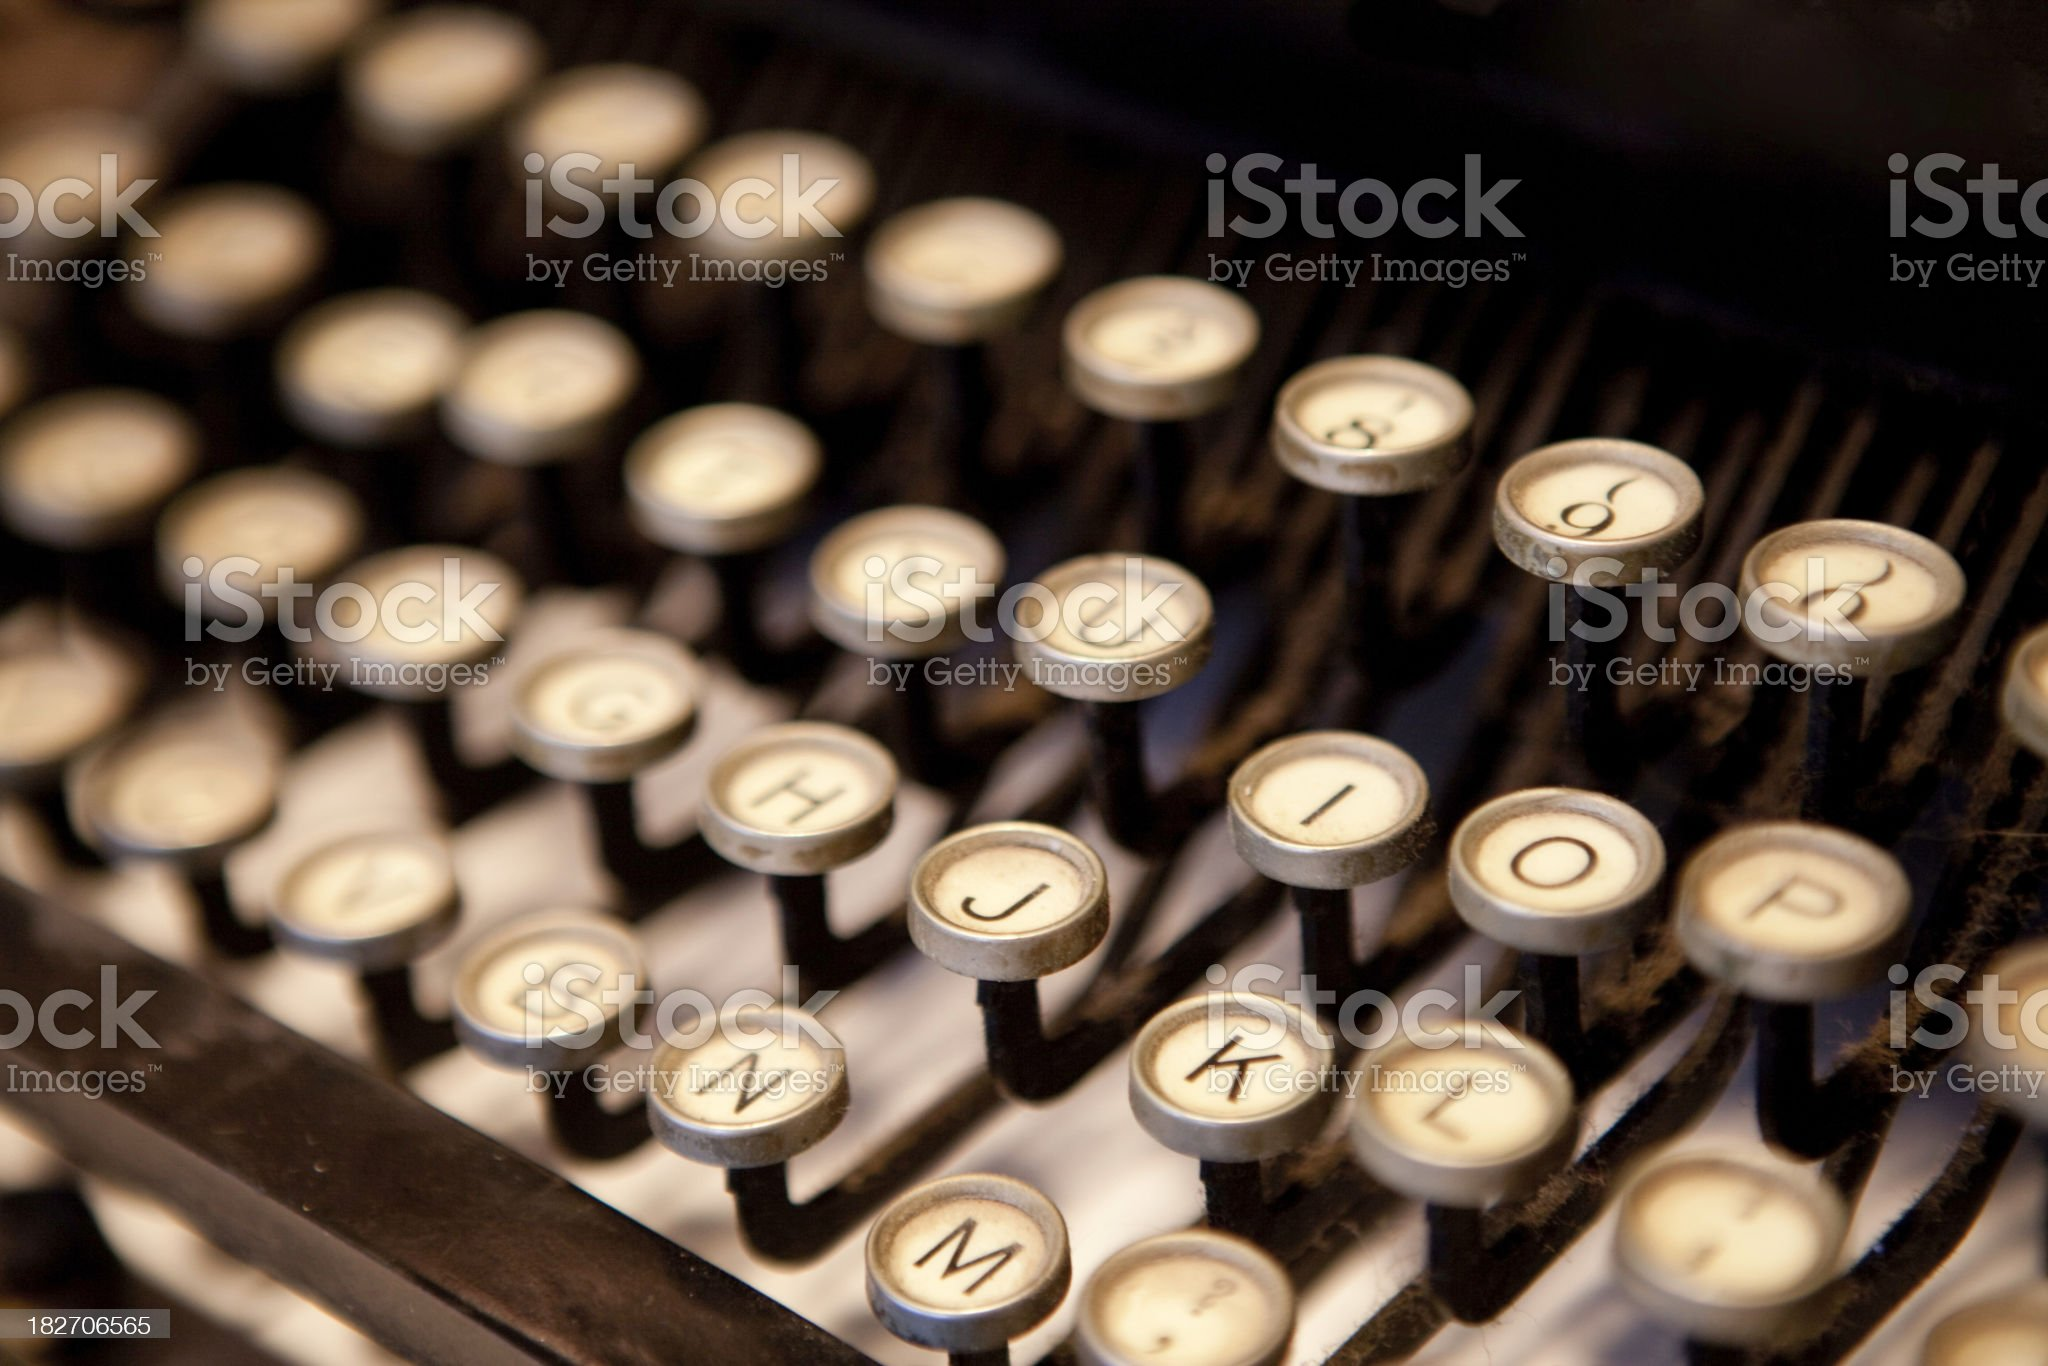 Old-Fashioned Typewriter royalty-free stock photo